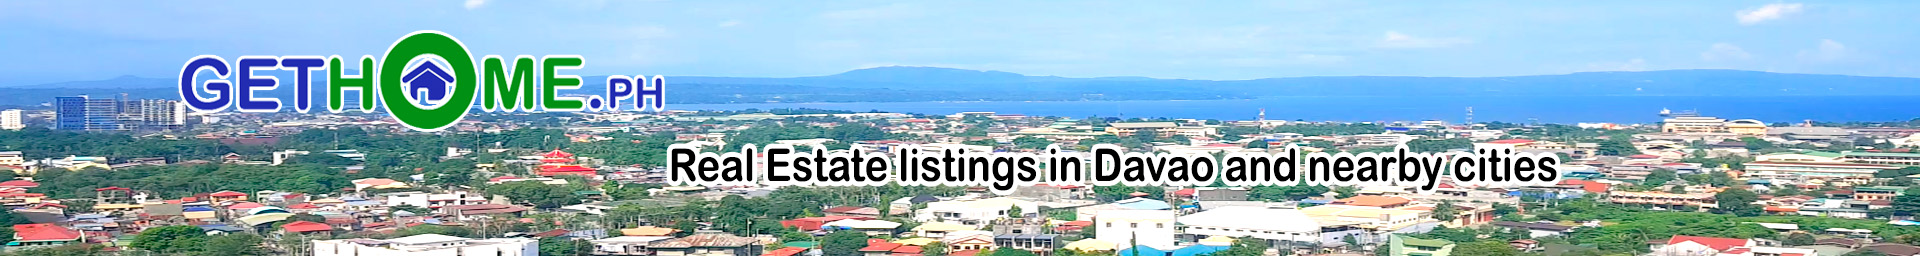 GETHOMEPH LOGO House and Lot Condo For Sale in Davao